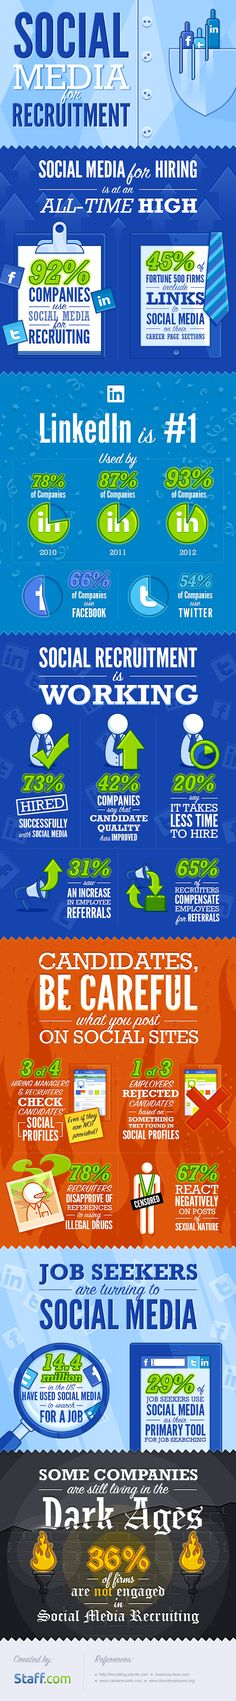 92% Of Companies Use Social Media For Recruitment [INFOGRAPHIC]